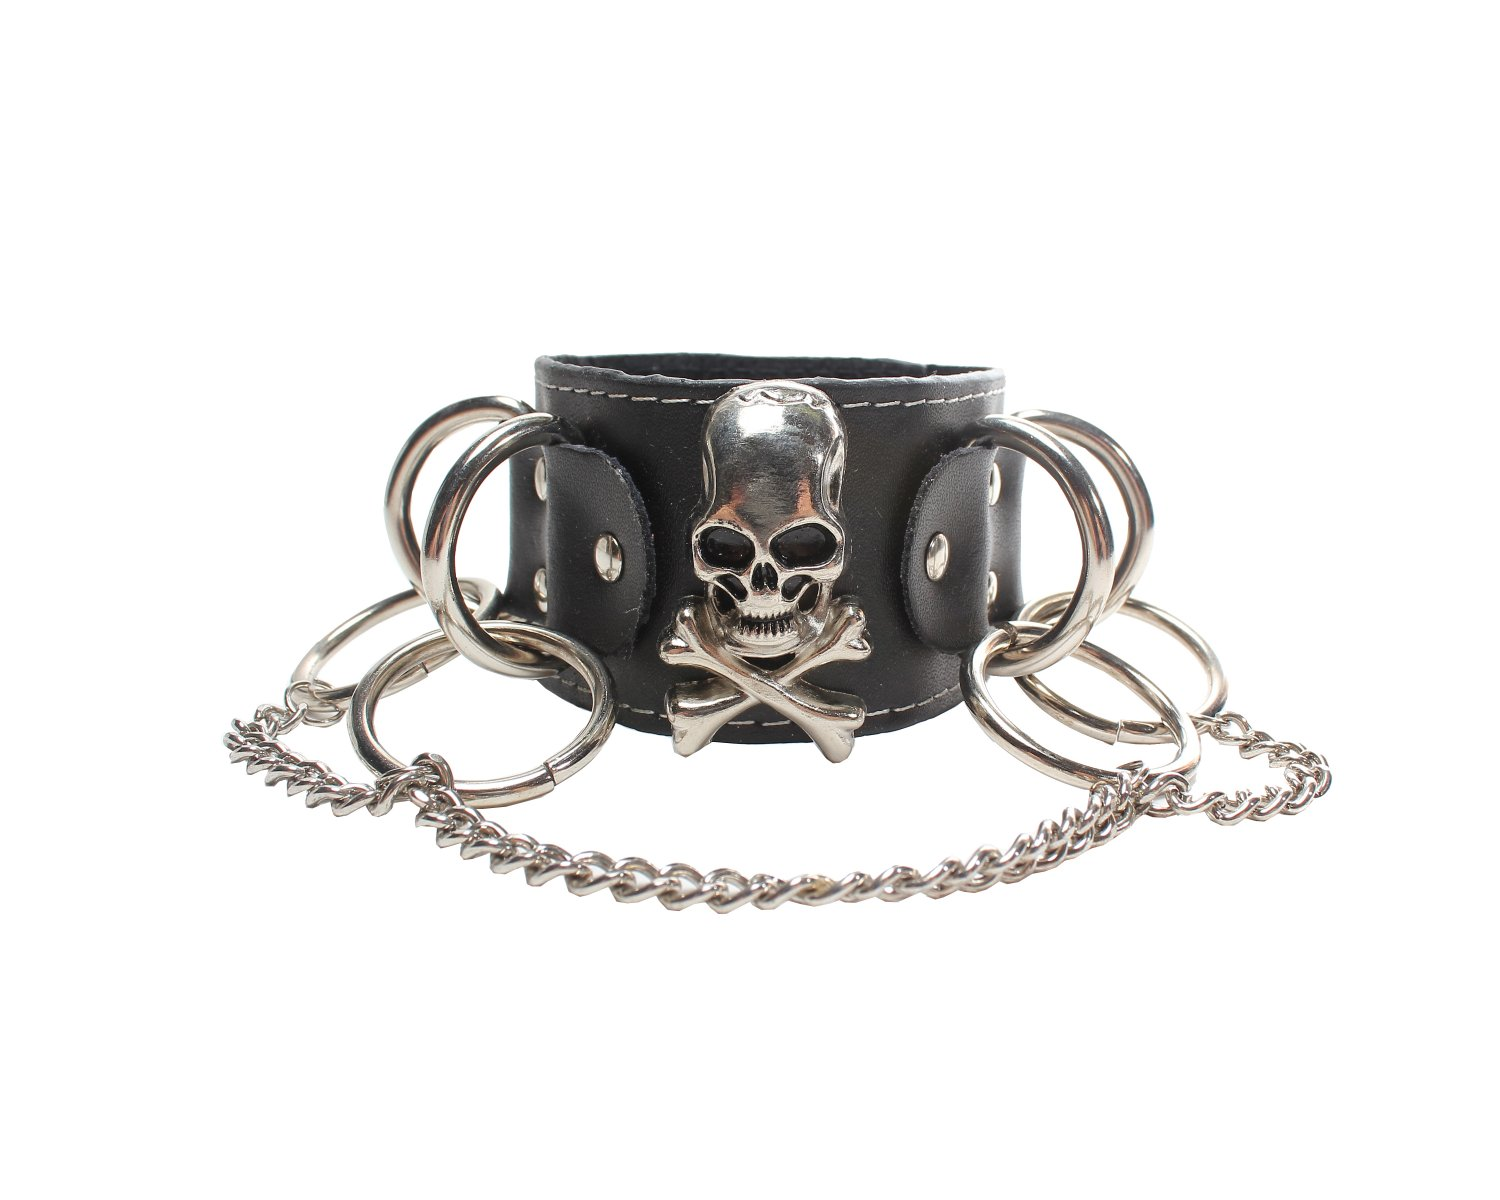 Skulls With Chains Gothic Bracelet Wristband Cuff (B634R)